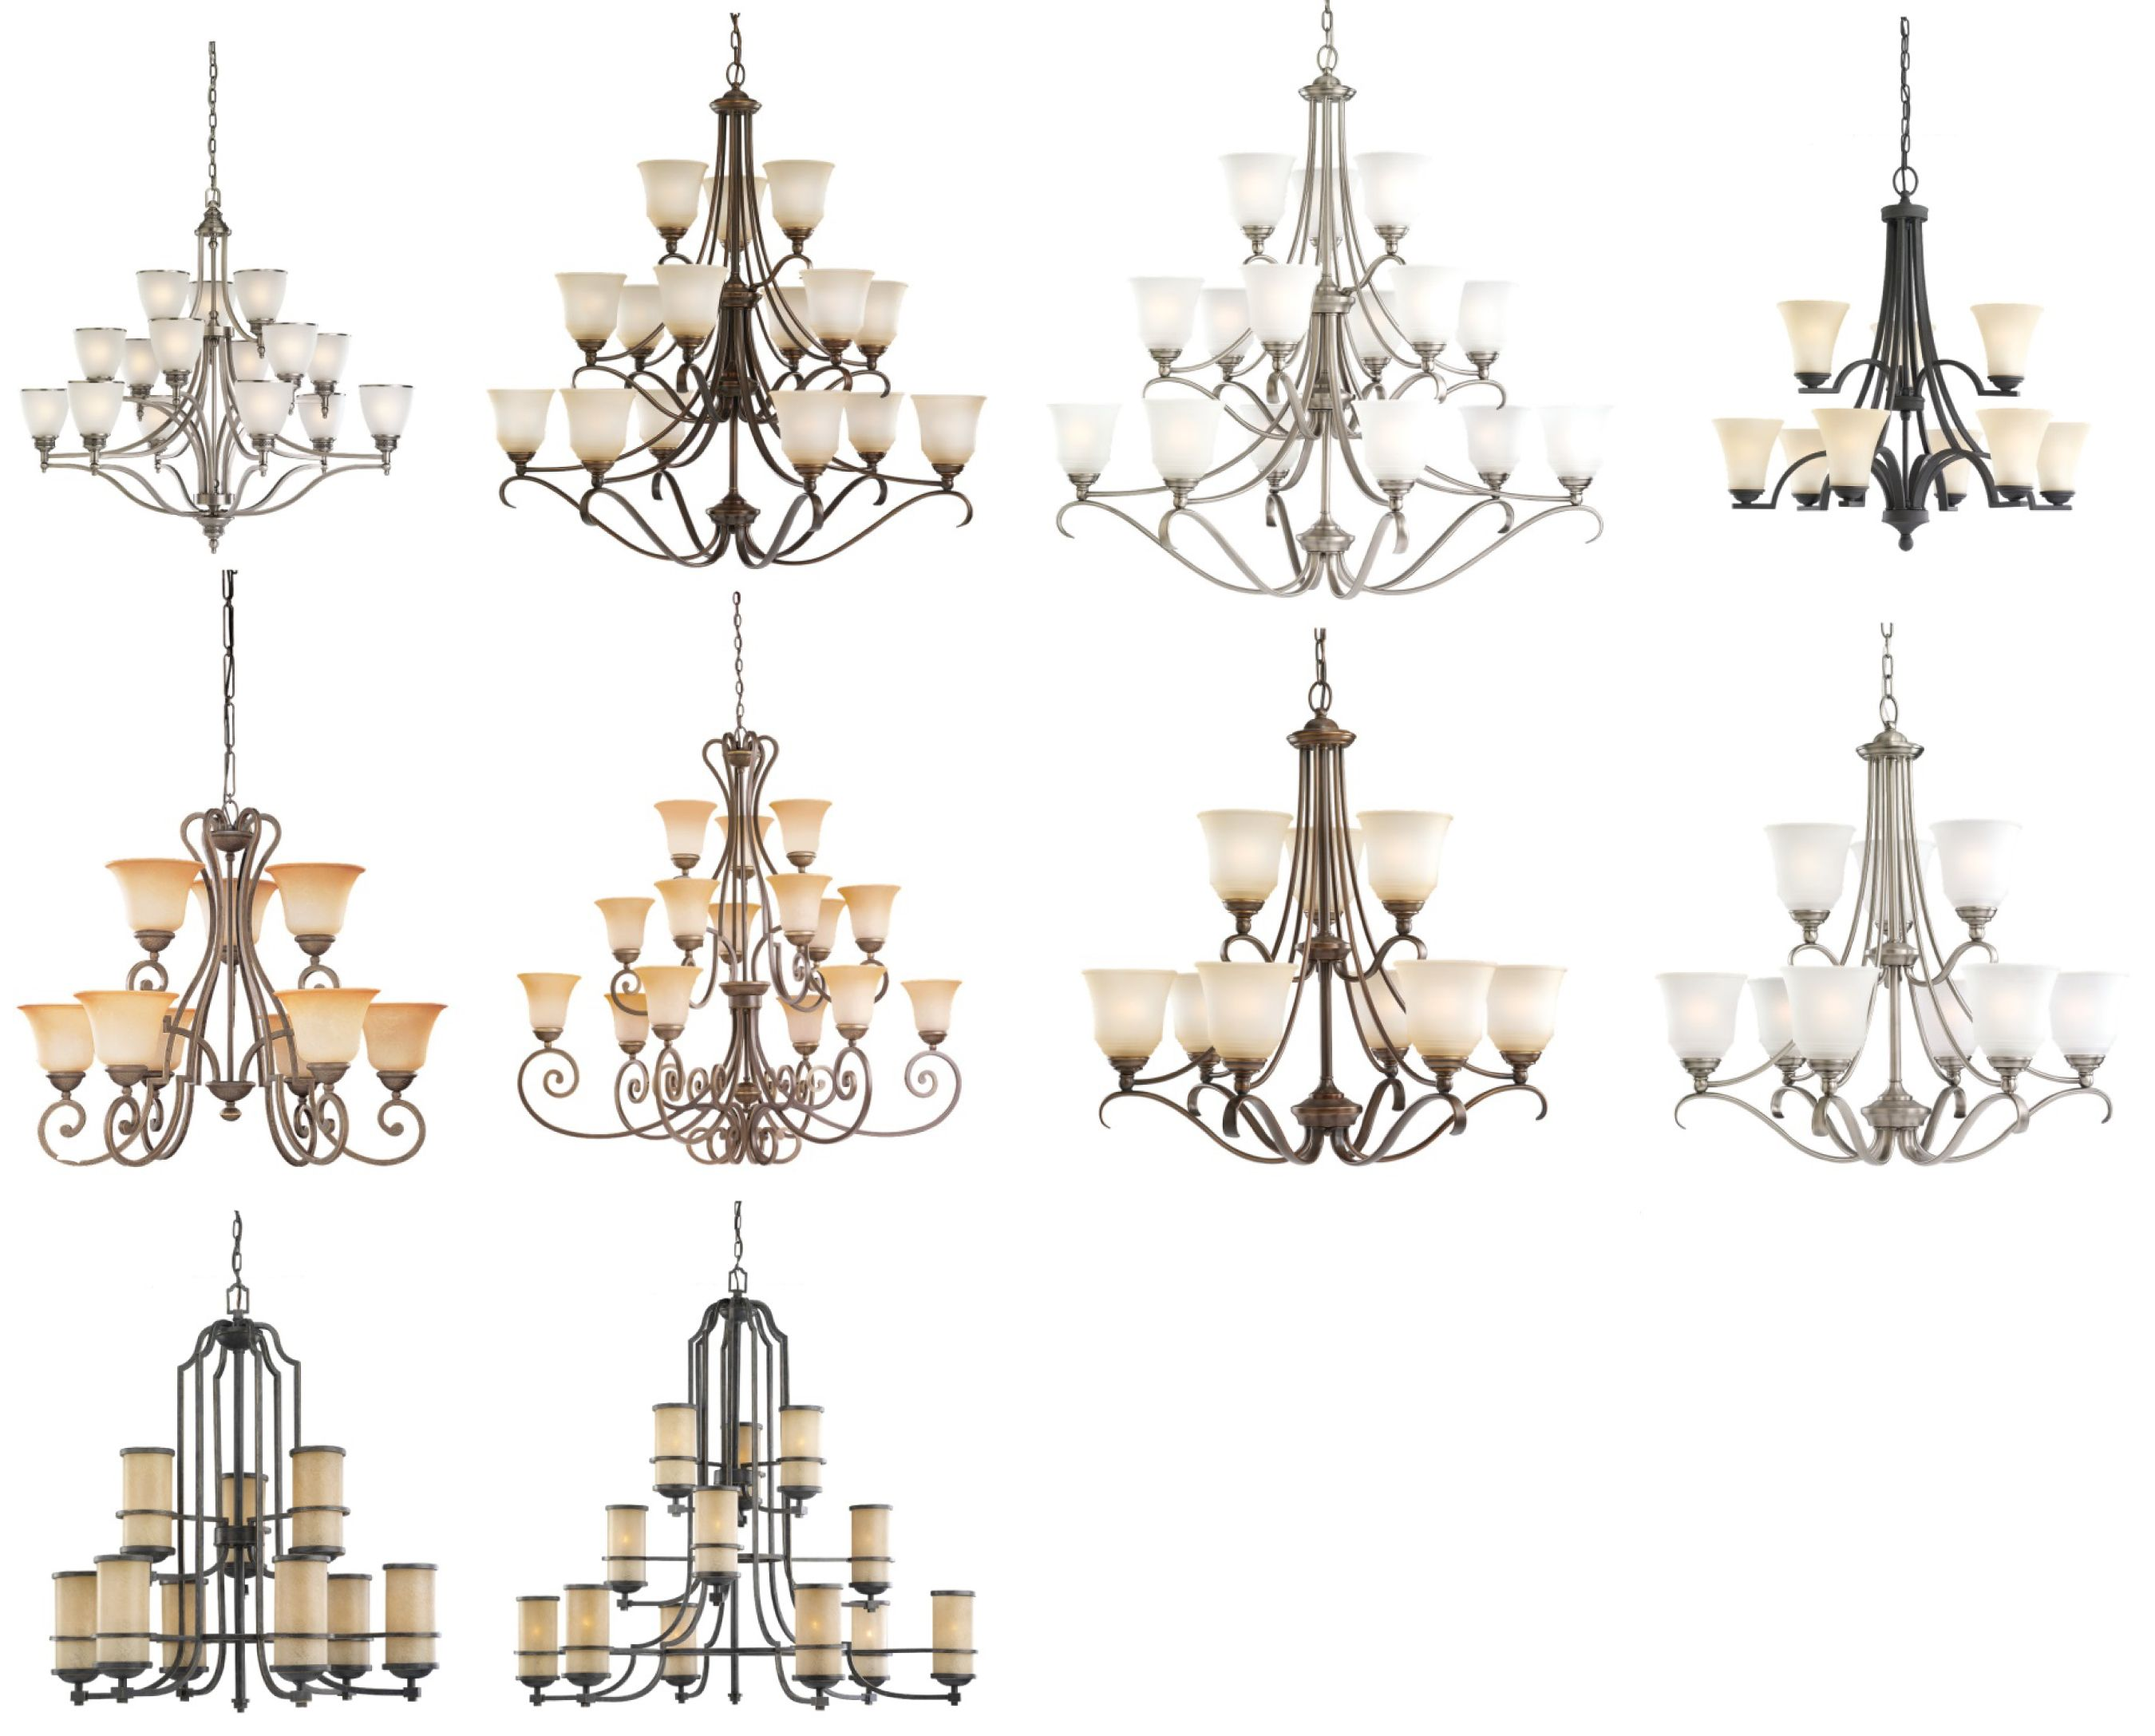 Different types of chandeliers that you want to have at your home different types of chandeliers that you want to have at your home arubaitofo Image collections